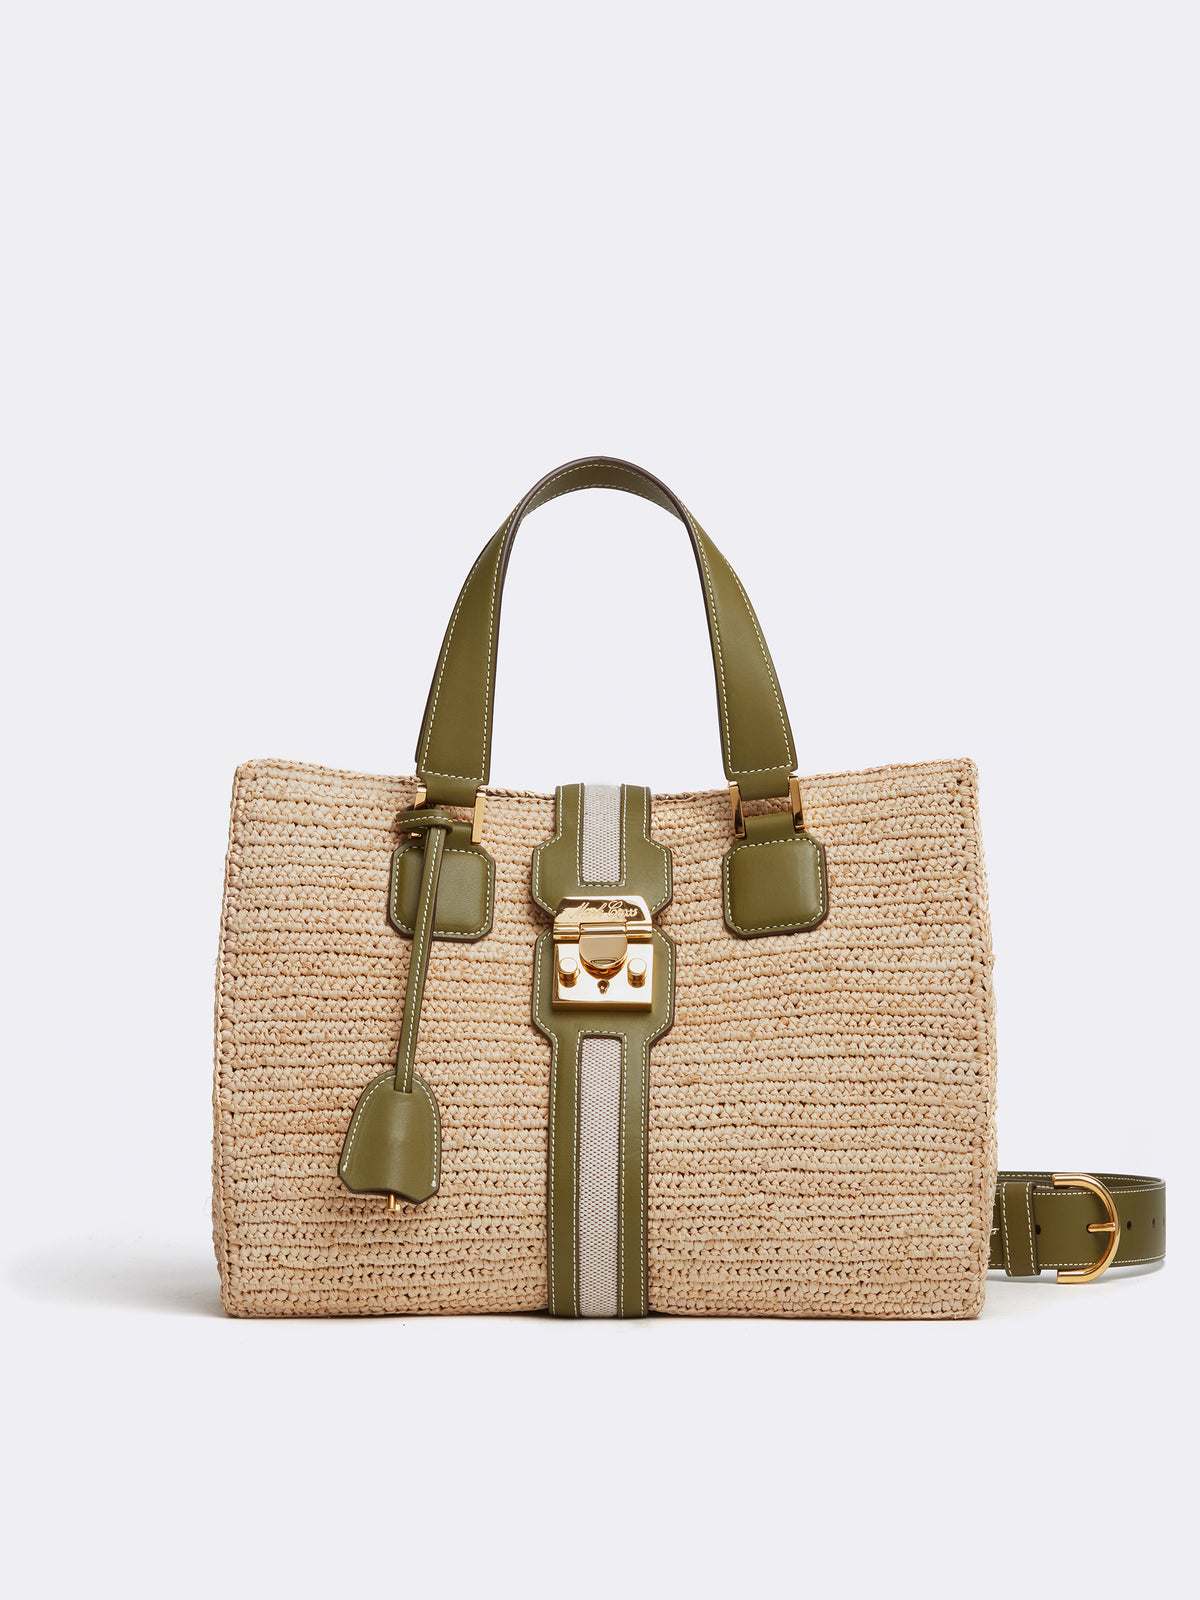 Mark Cross Riviera Raffia & Leather Tote Bag Smooth Calf Avocado / Birdseye / Natural Raffia Front